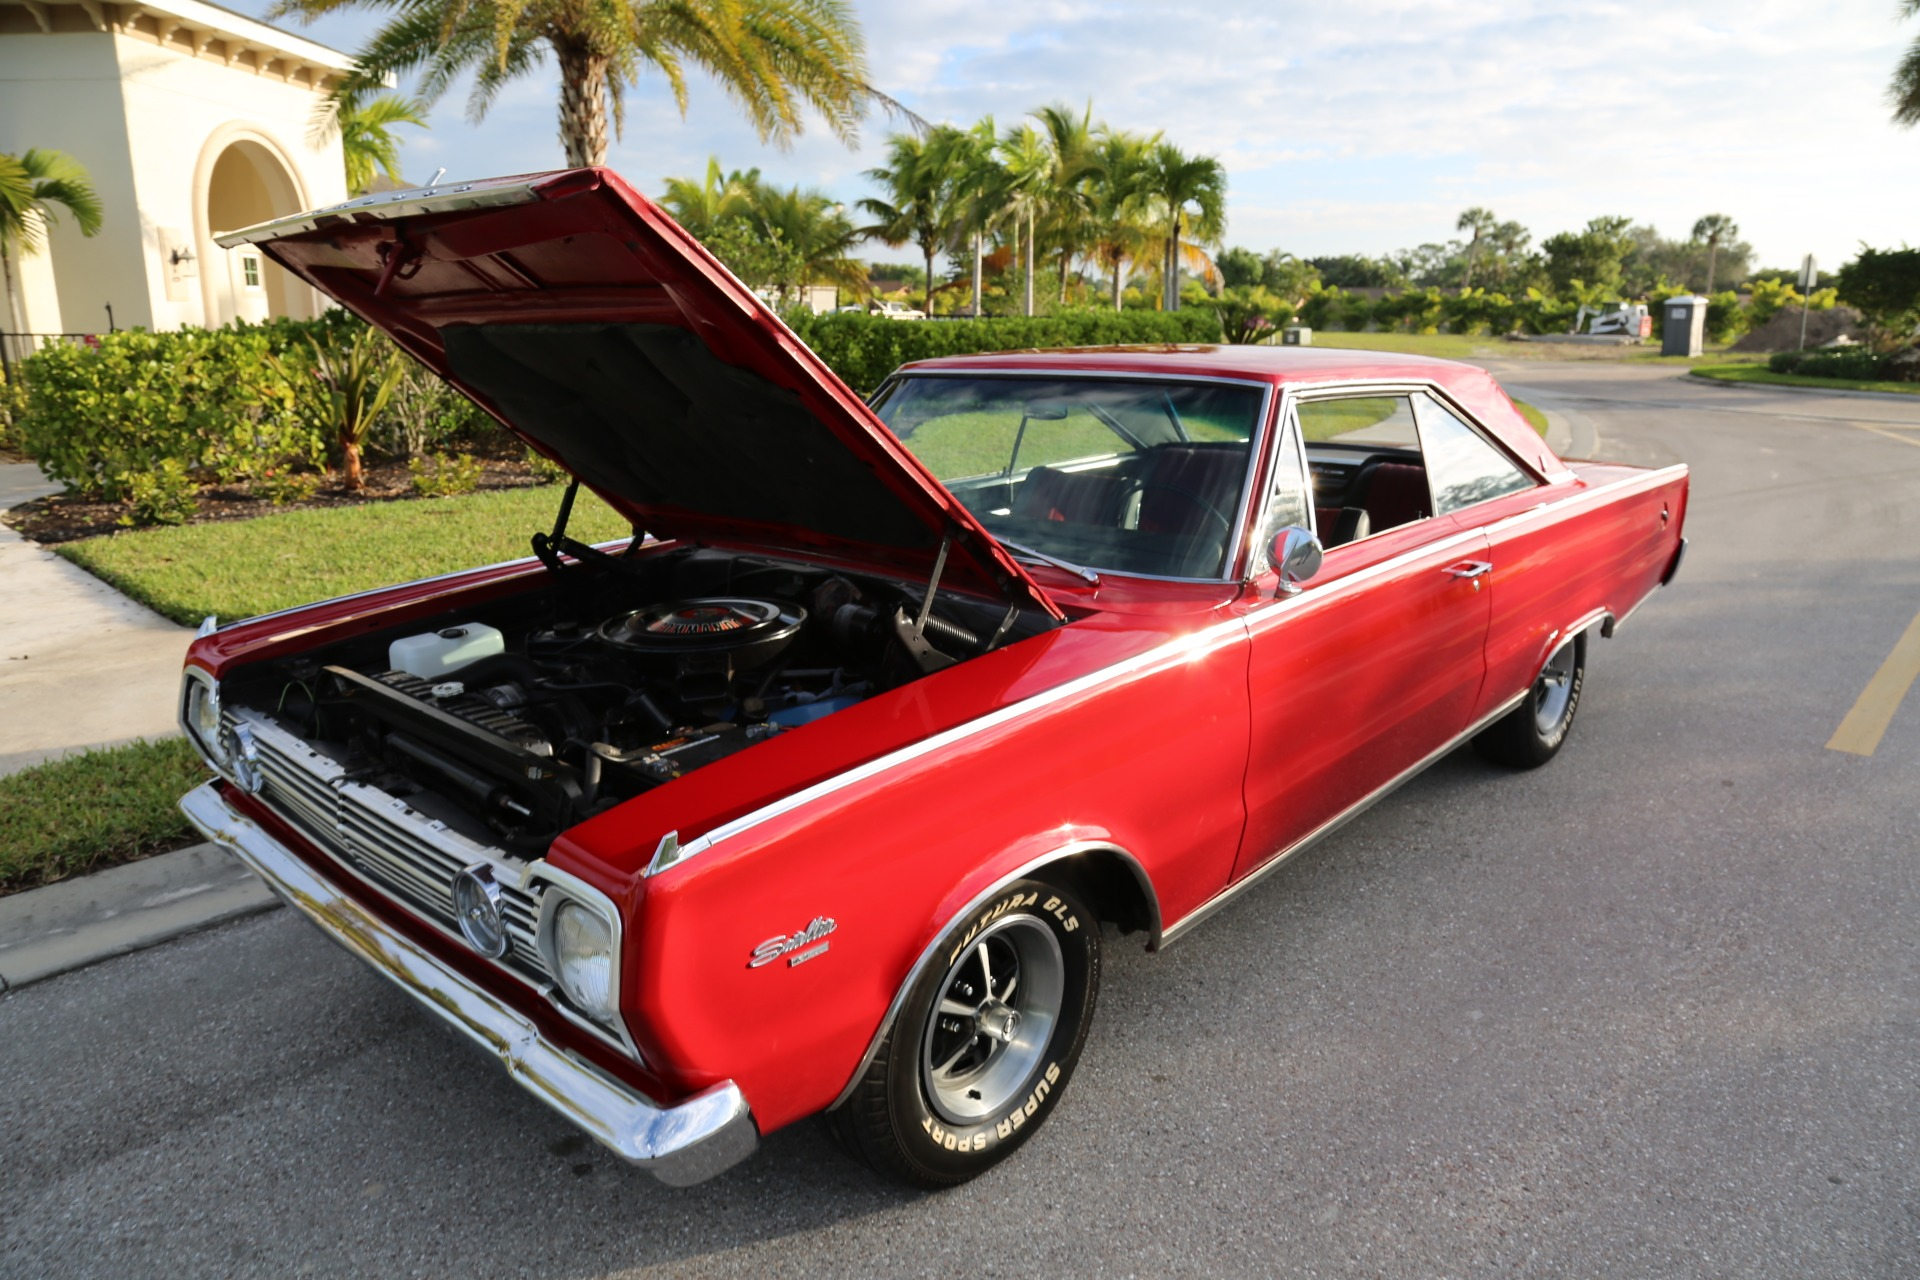 Used 1966 Plymouth Satellite 440 V8 Automatic for sale Sold at Muscle Cars for Sale Inc. in Fort Myers FL 33912 8